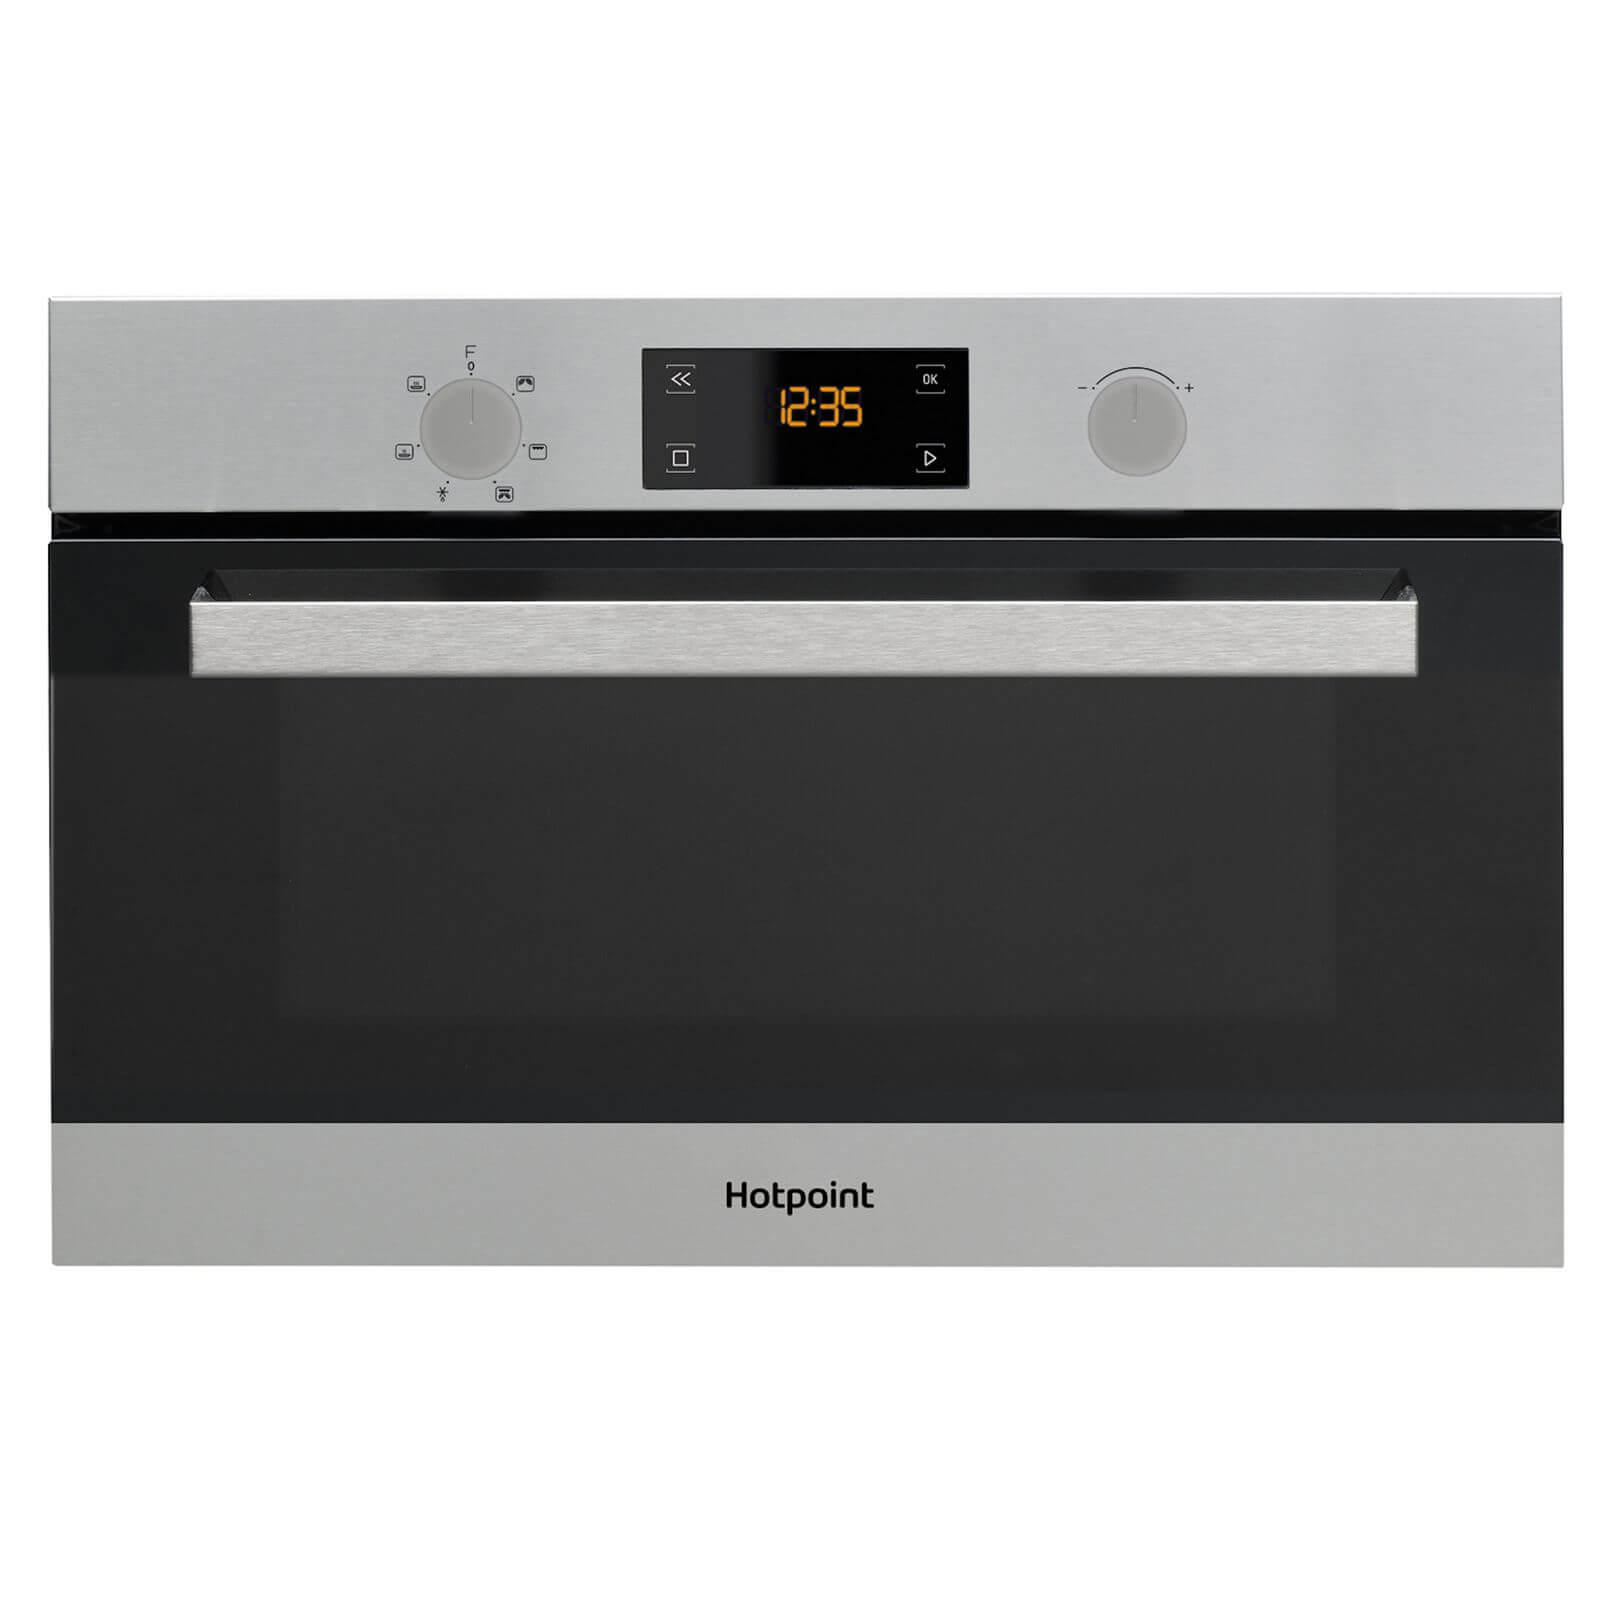 Hotpoint Class 3 MD 344 IX H Built-in Microwave - Stainless Steel